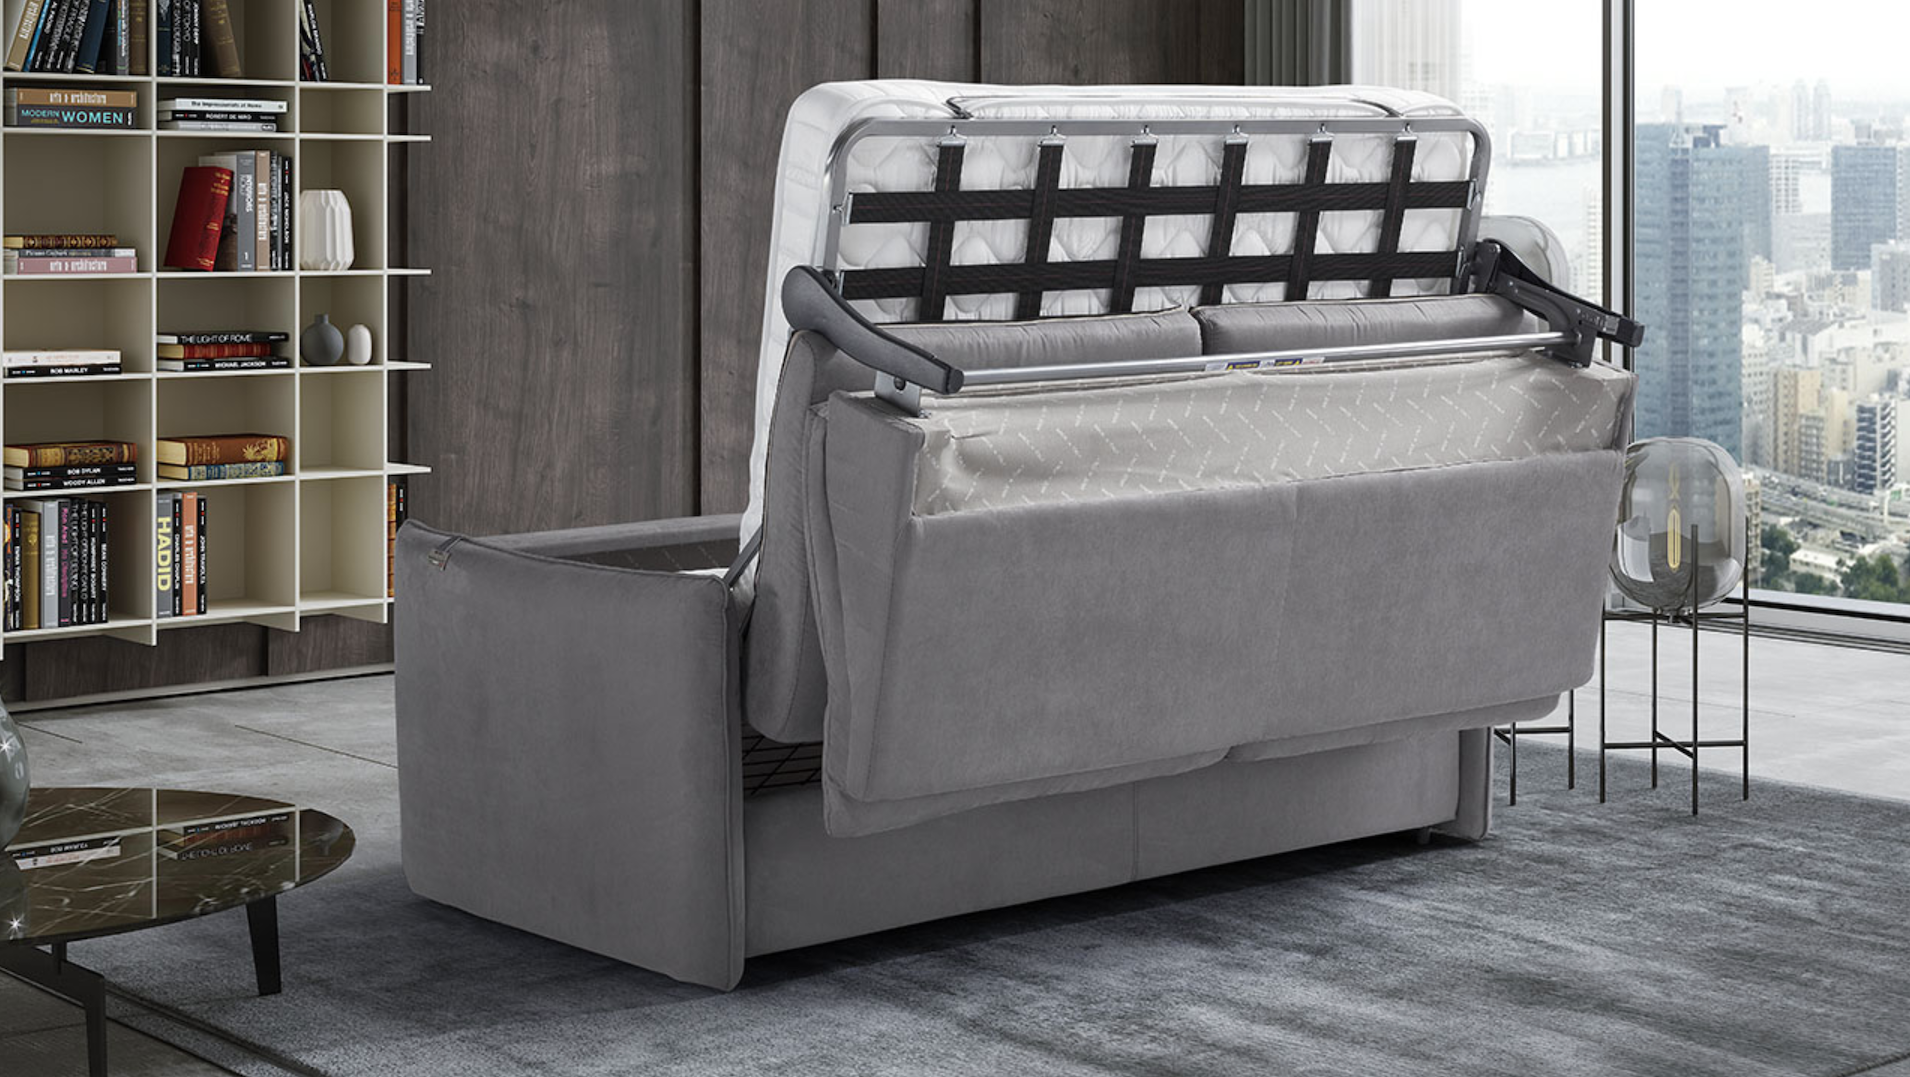 AIMEE Italian Crafted 3 Seat Sofa Bed in PLAZA SILVER RRP £1979 - Image 4 of 5